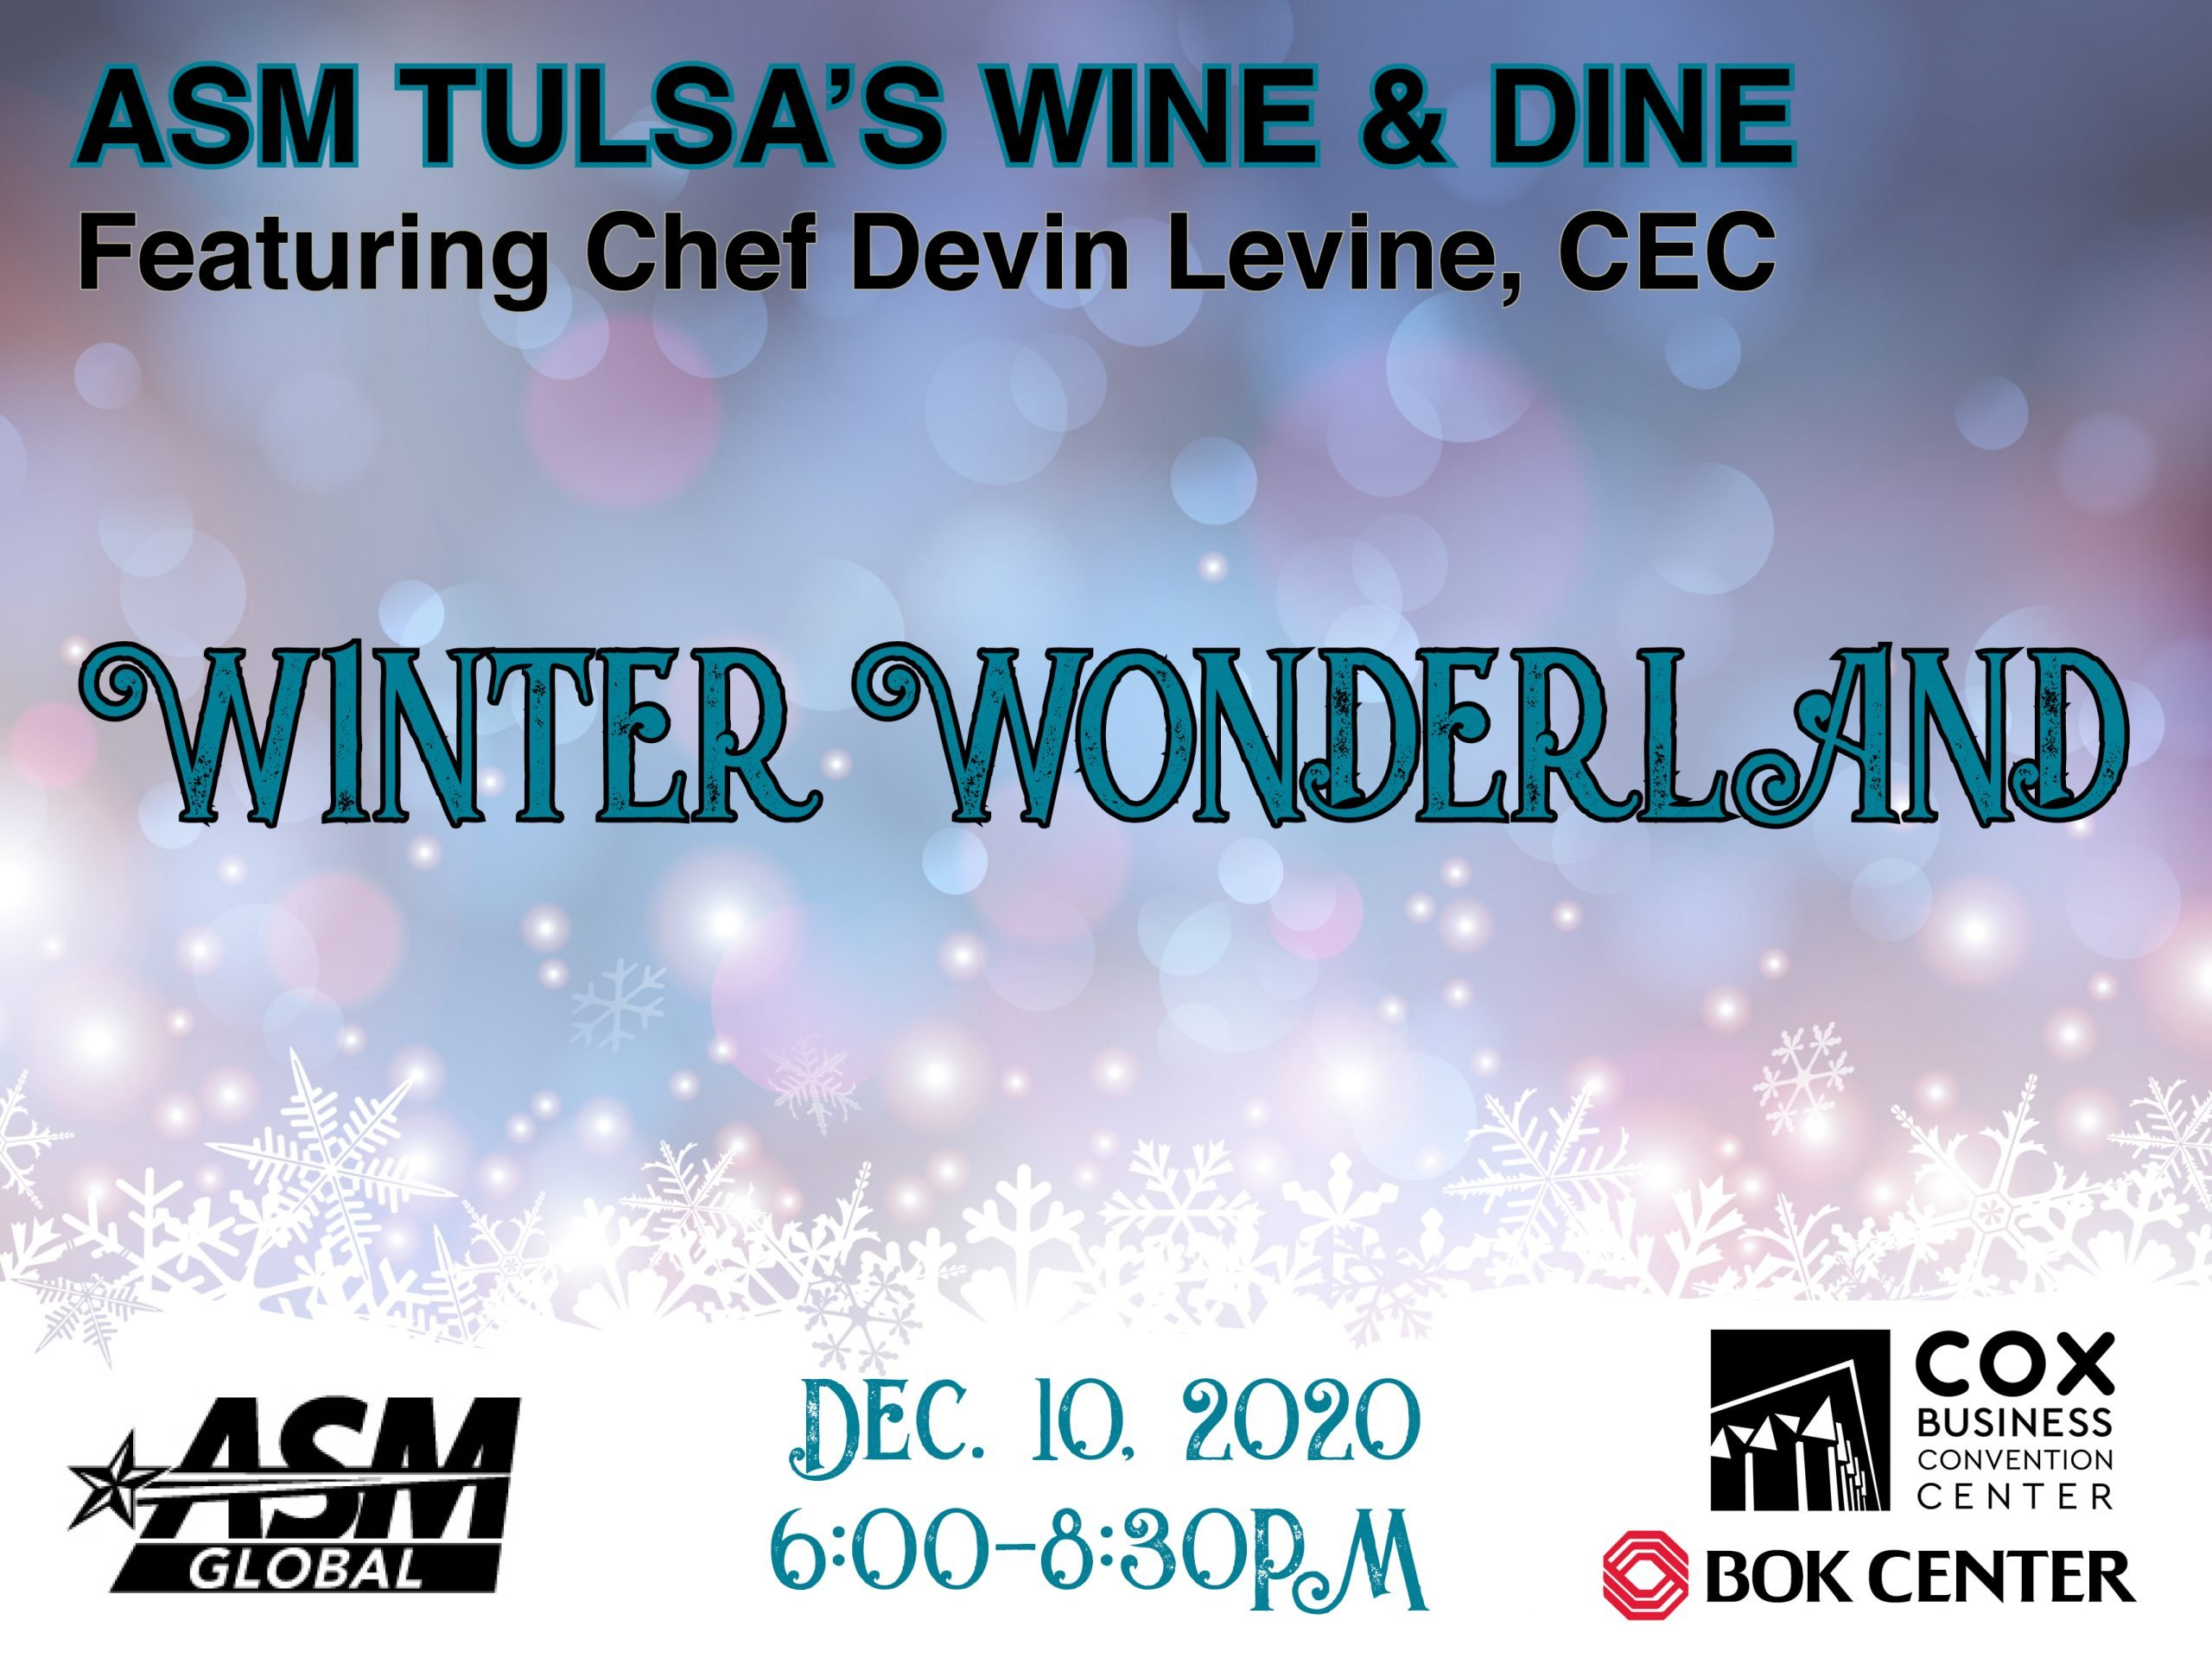 ASM Tulsa Winter Wonderland Wine and Dine